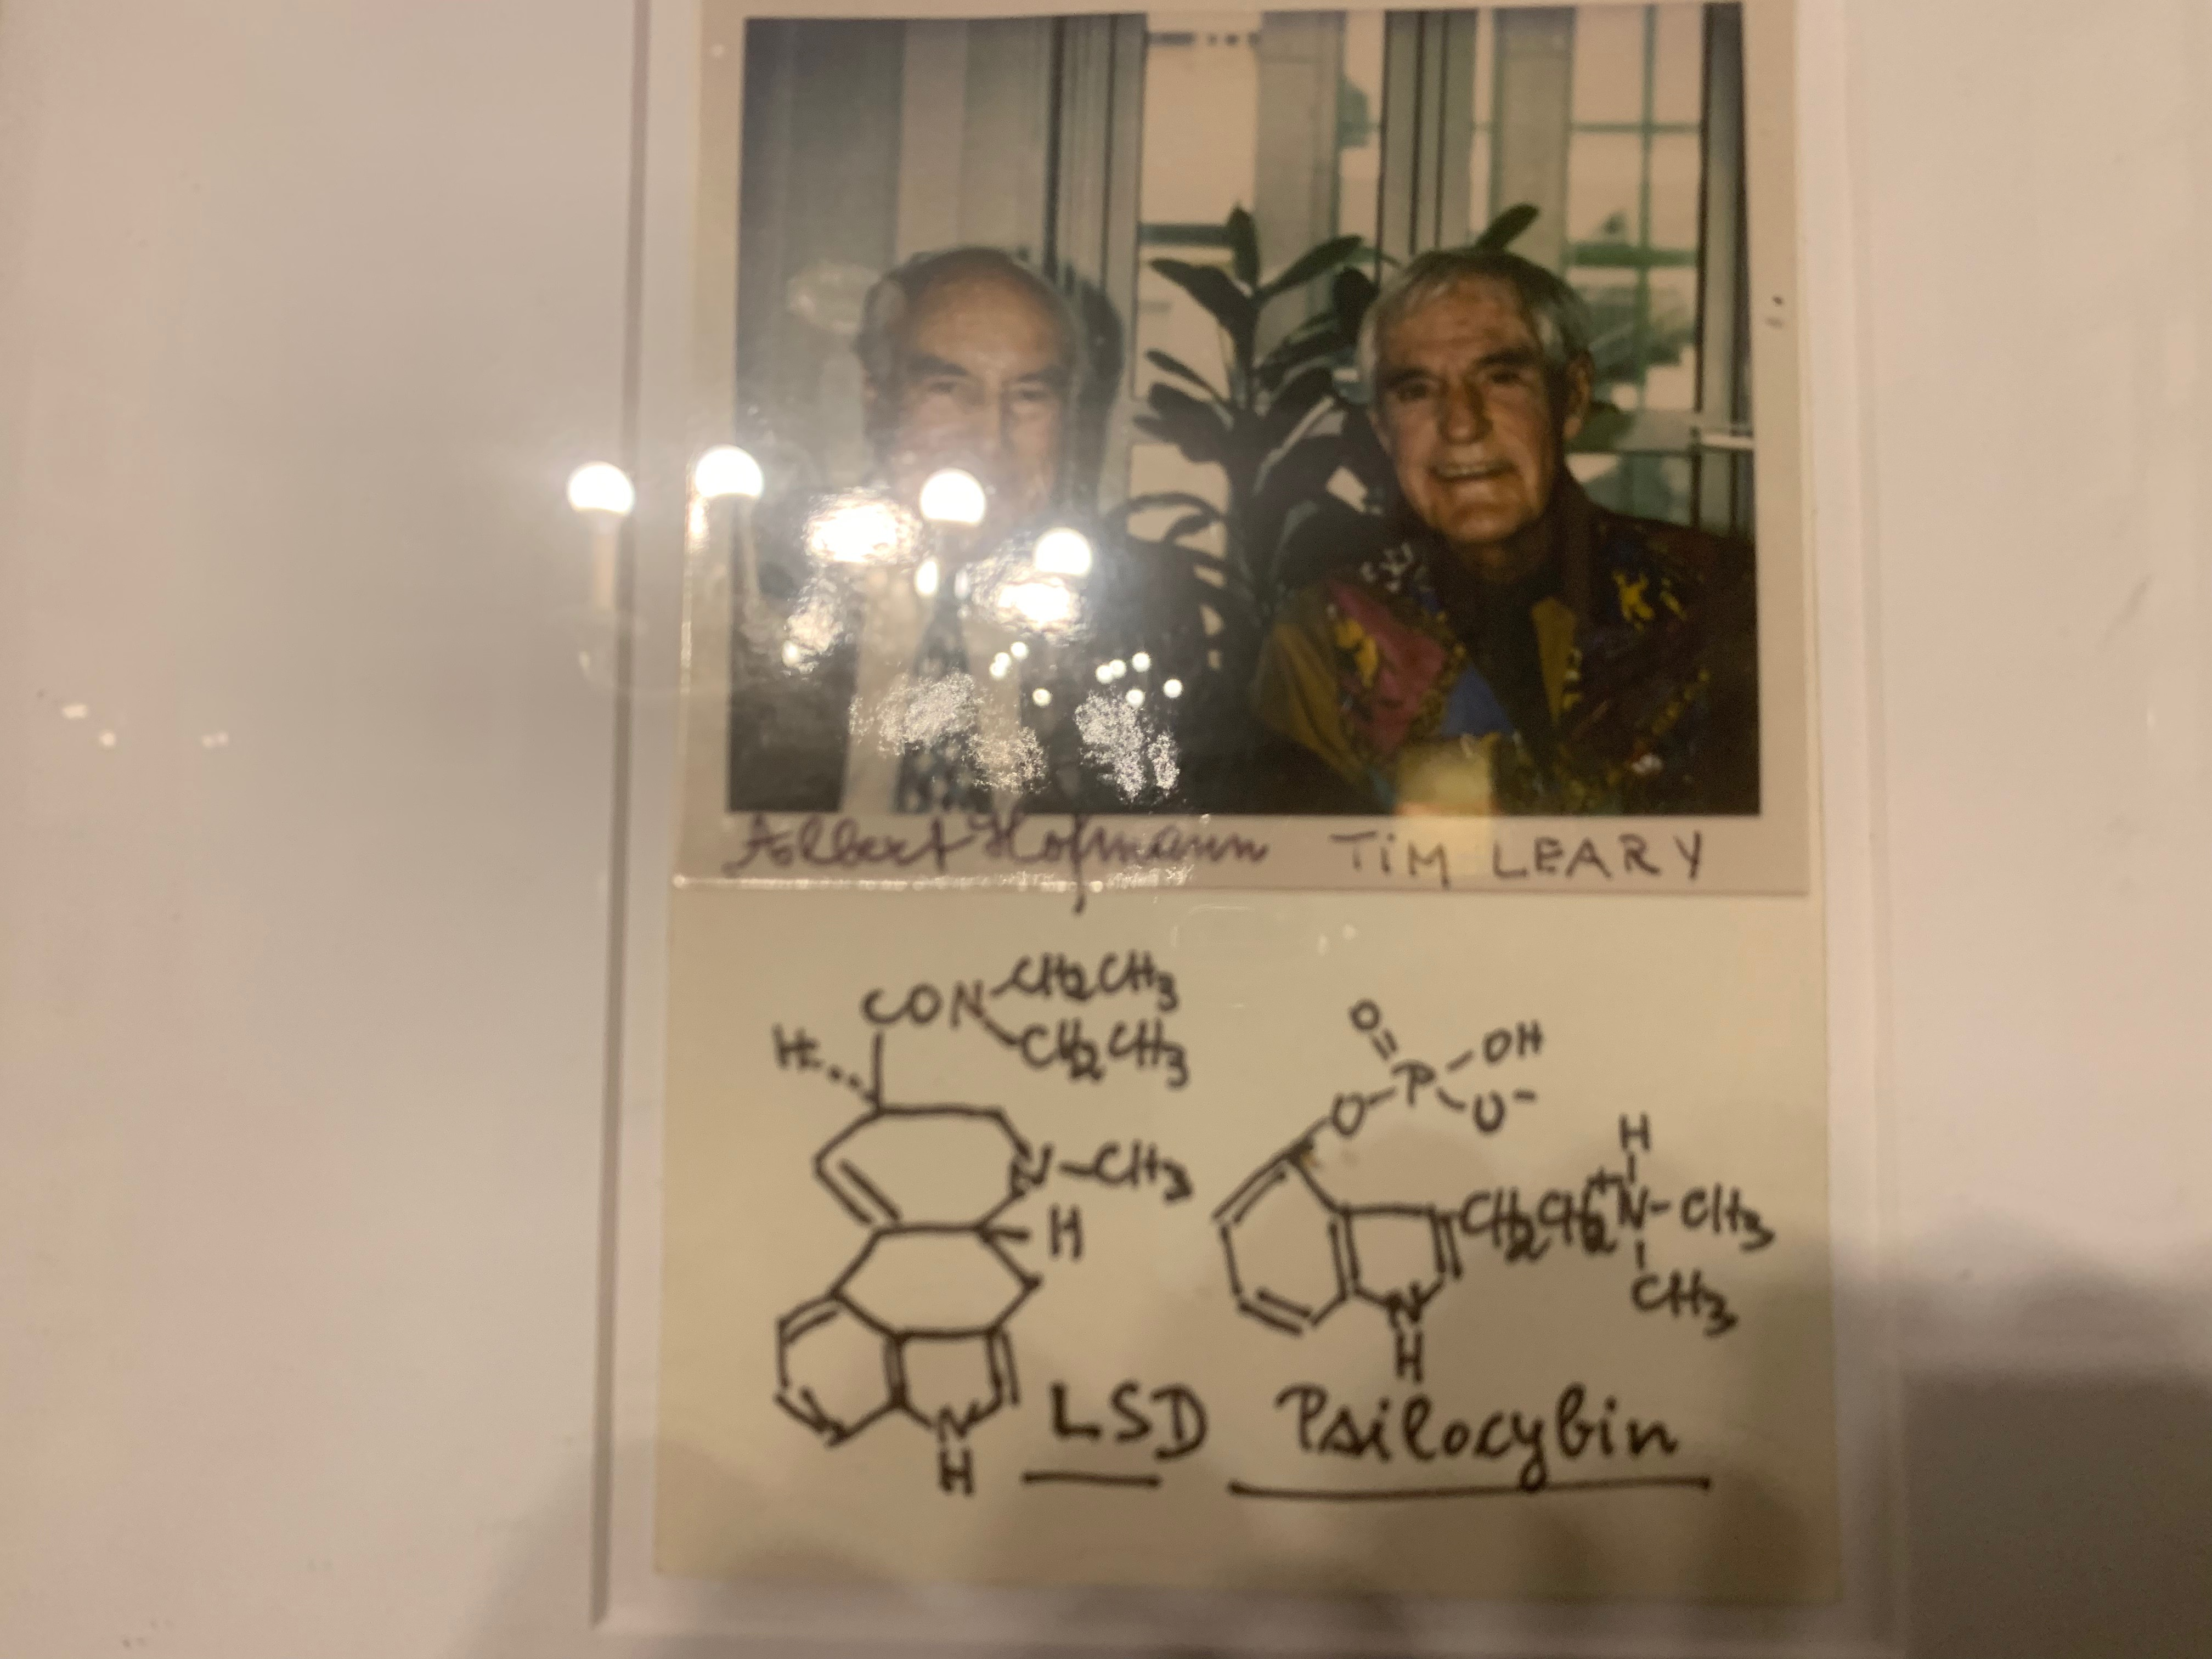 A photograph of Timothy Leary and Albert Hoffman from the Mark McCloud's collection.